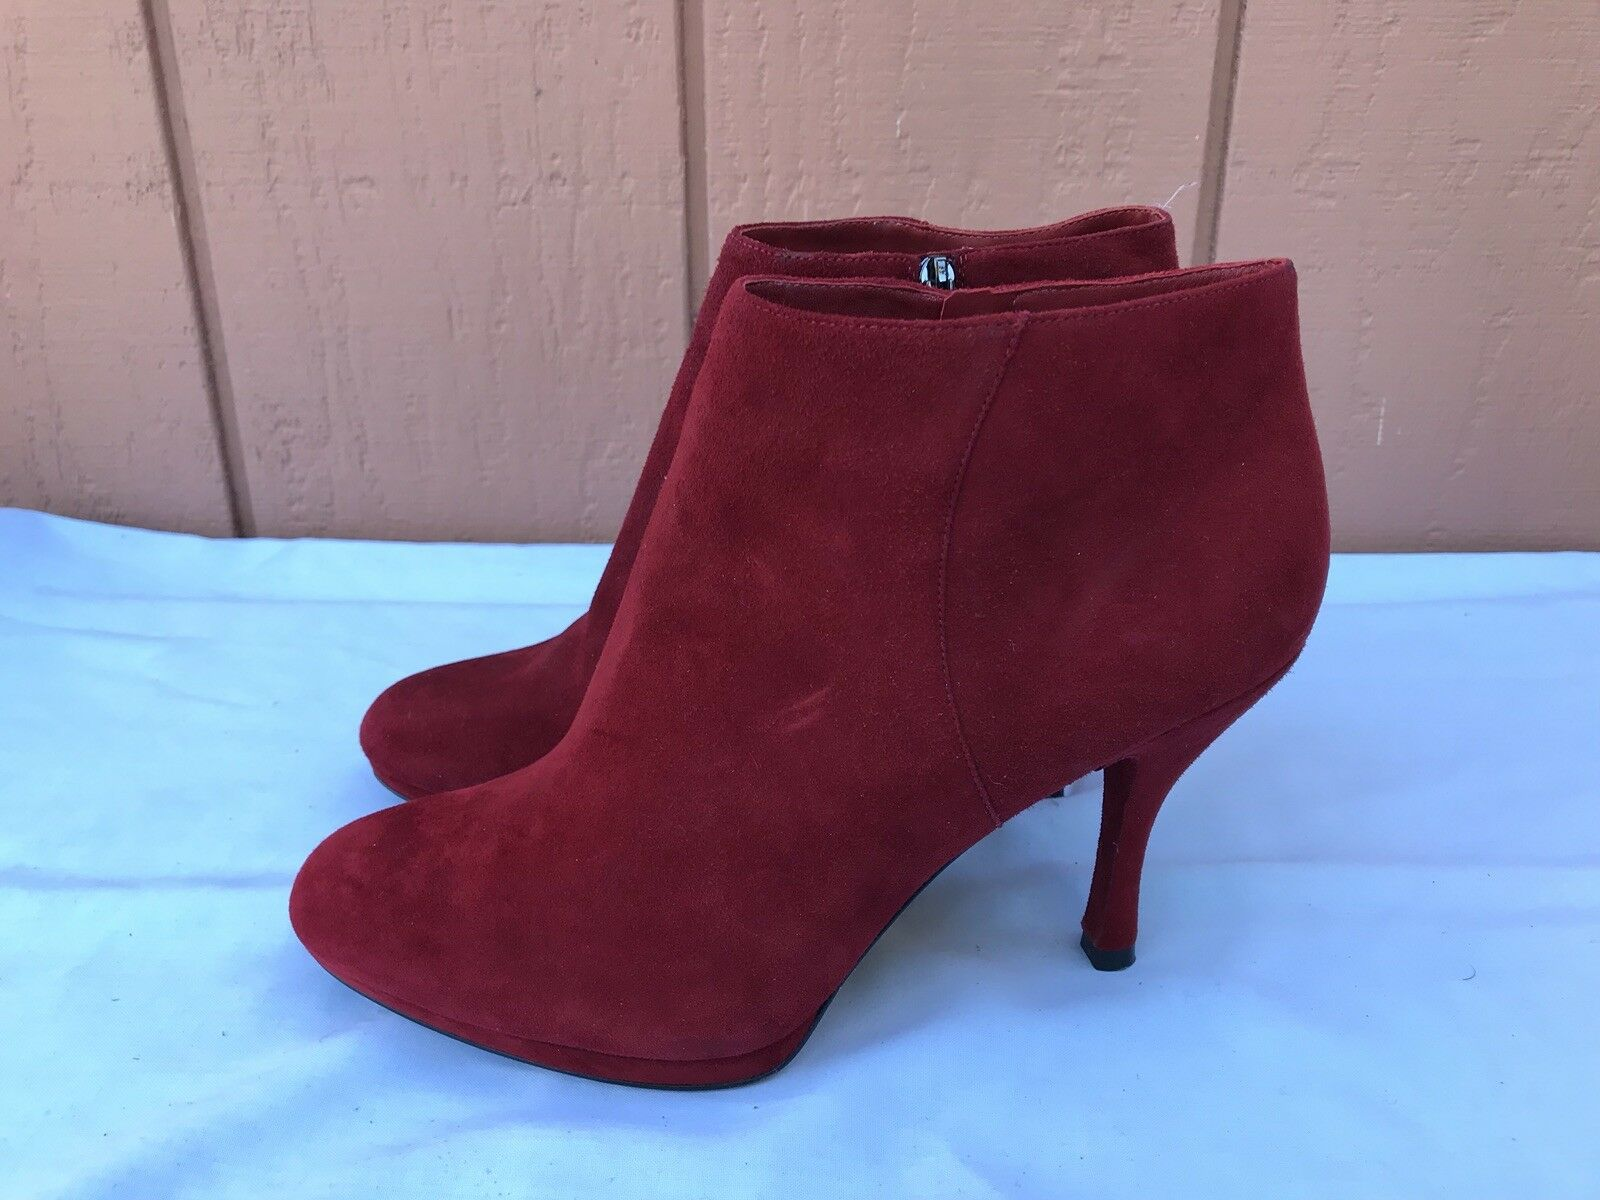 EUC VIA SPIGA Women's US 8.5 Red Suede Ankle Boots Booties Zip High Heel A9